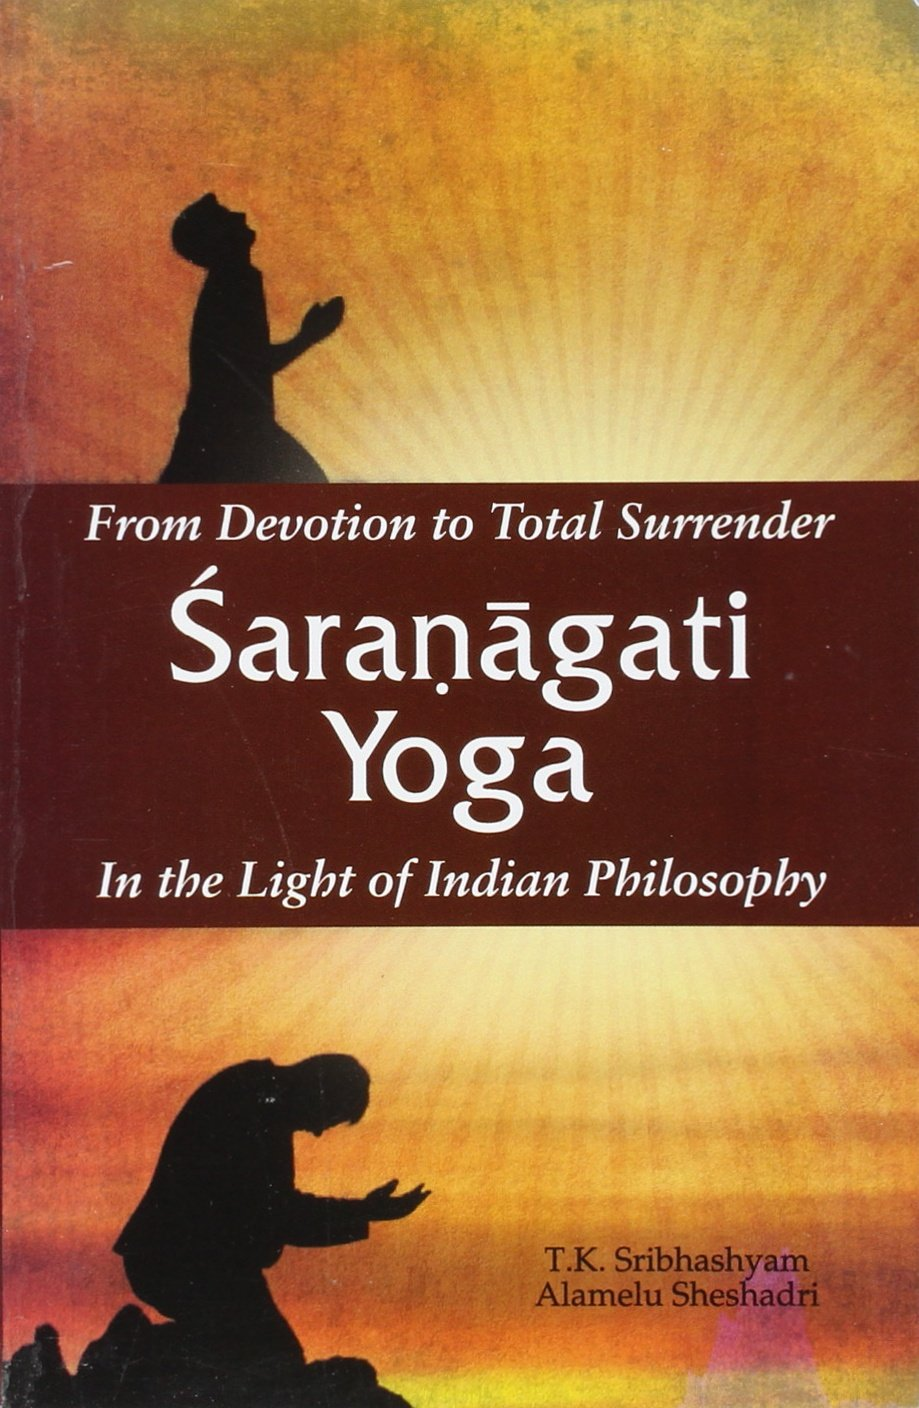 Read Online From Devotion to Total Surrender Sharnagati Yoga: In the Light of Indian Philosophy pdf